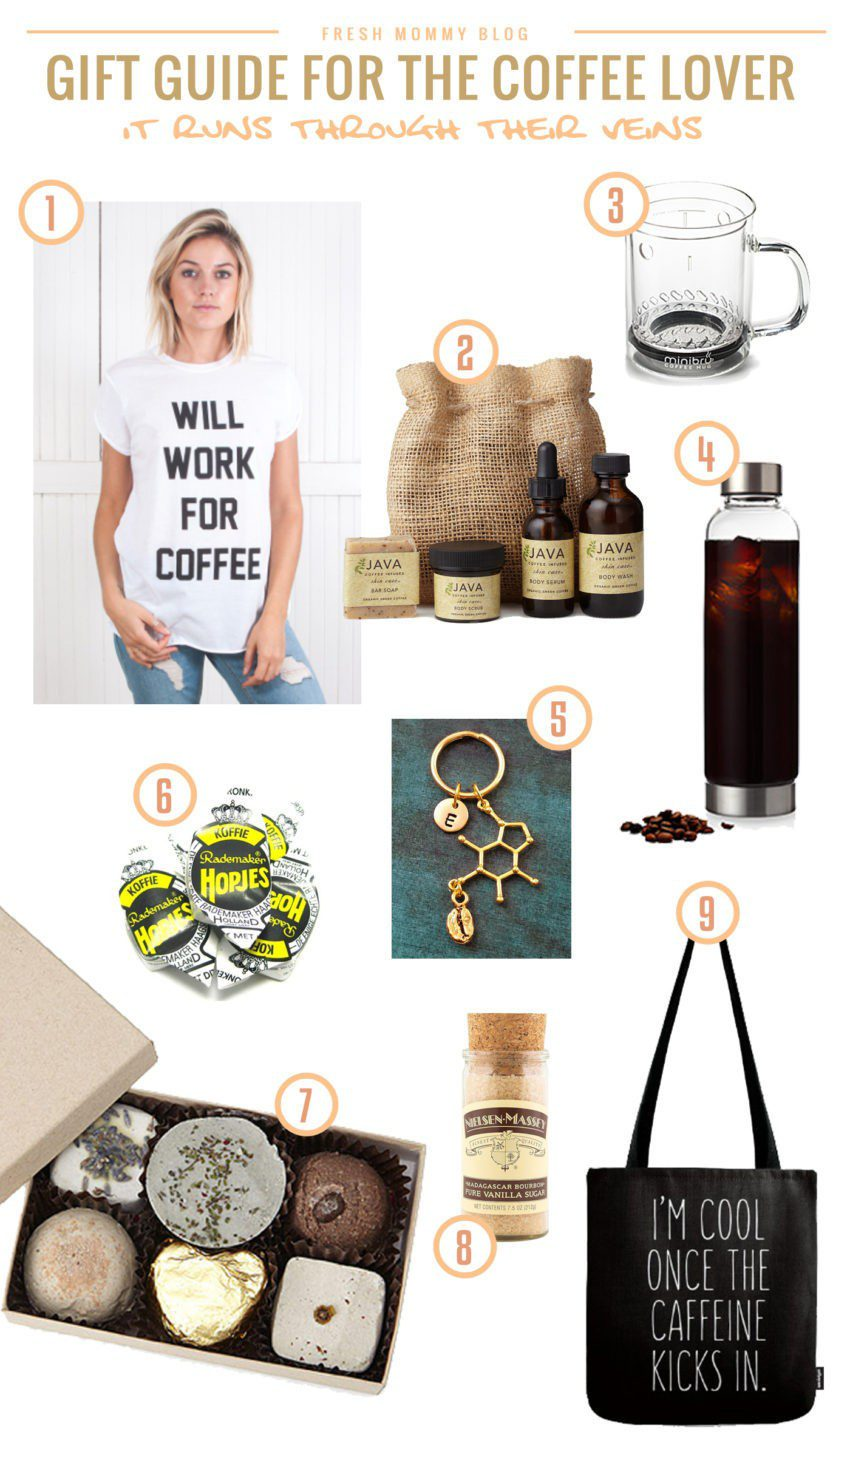 From our DIY Coffee Bar Cart to our homemade Pumpkin Spice Latte and more, we're definitely coffee lovers and rounded up our top gifts for the coffee lover!